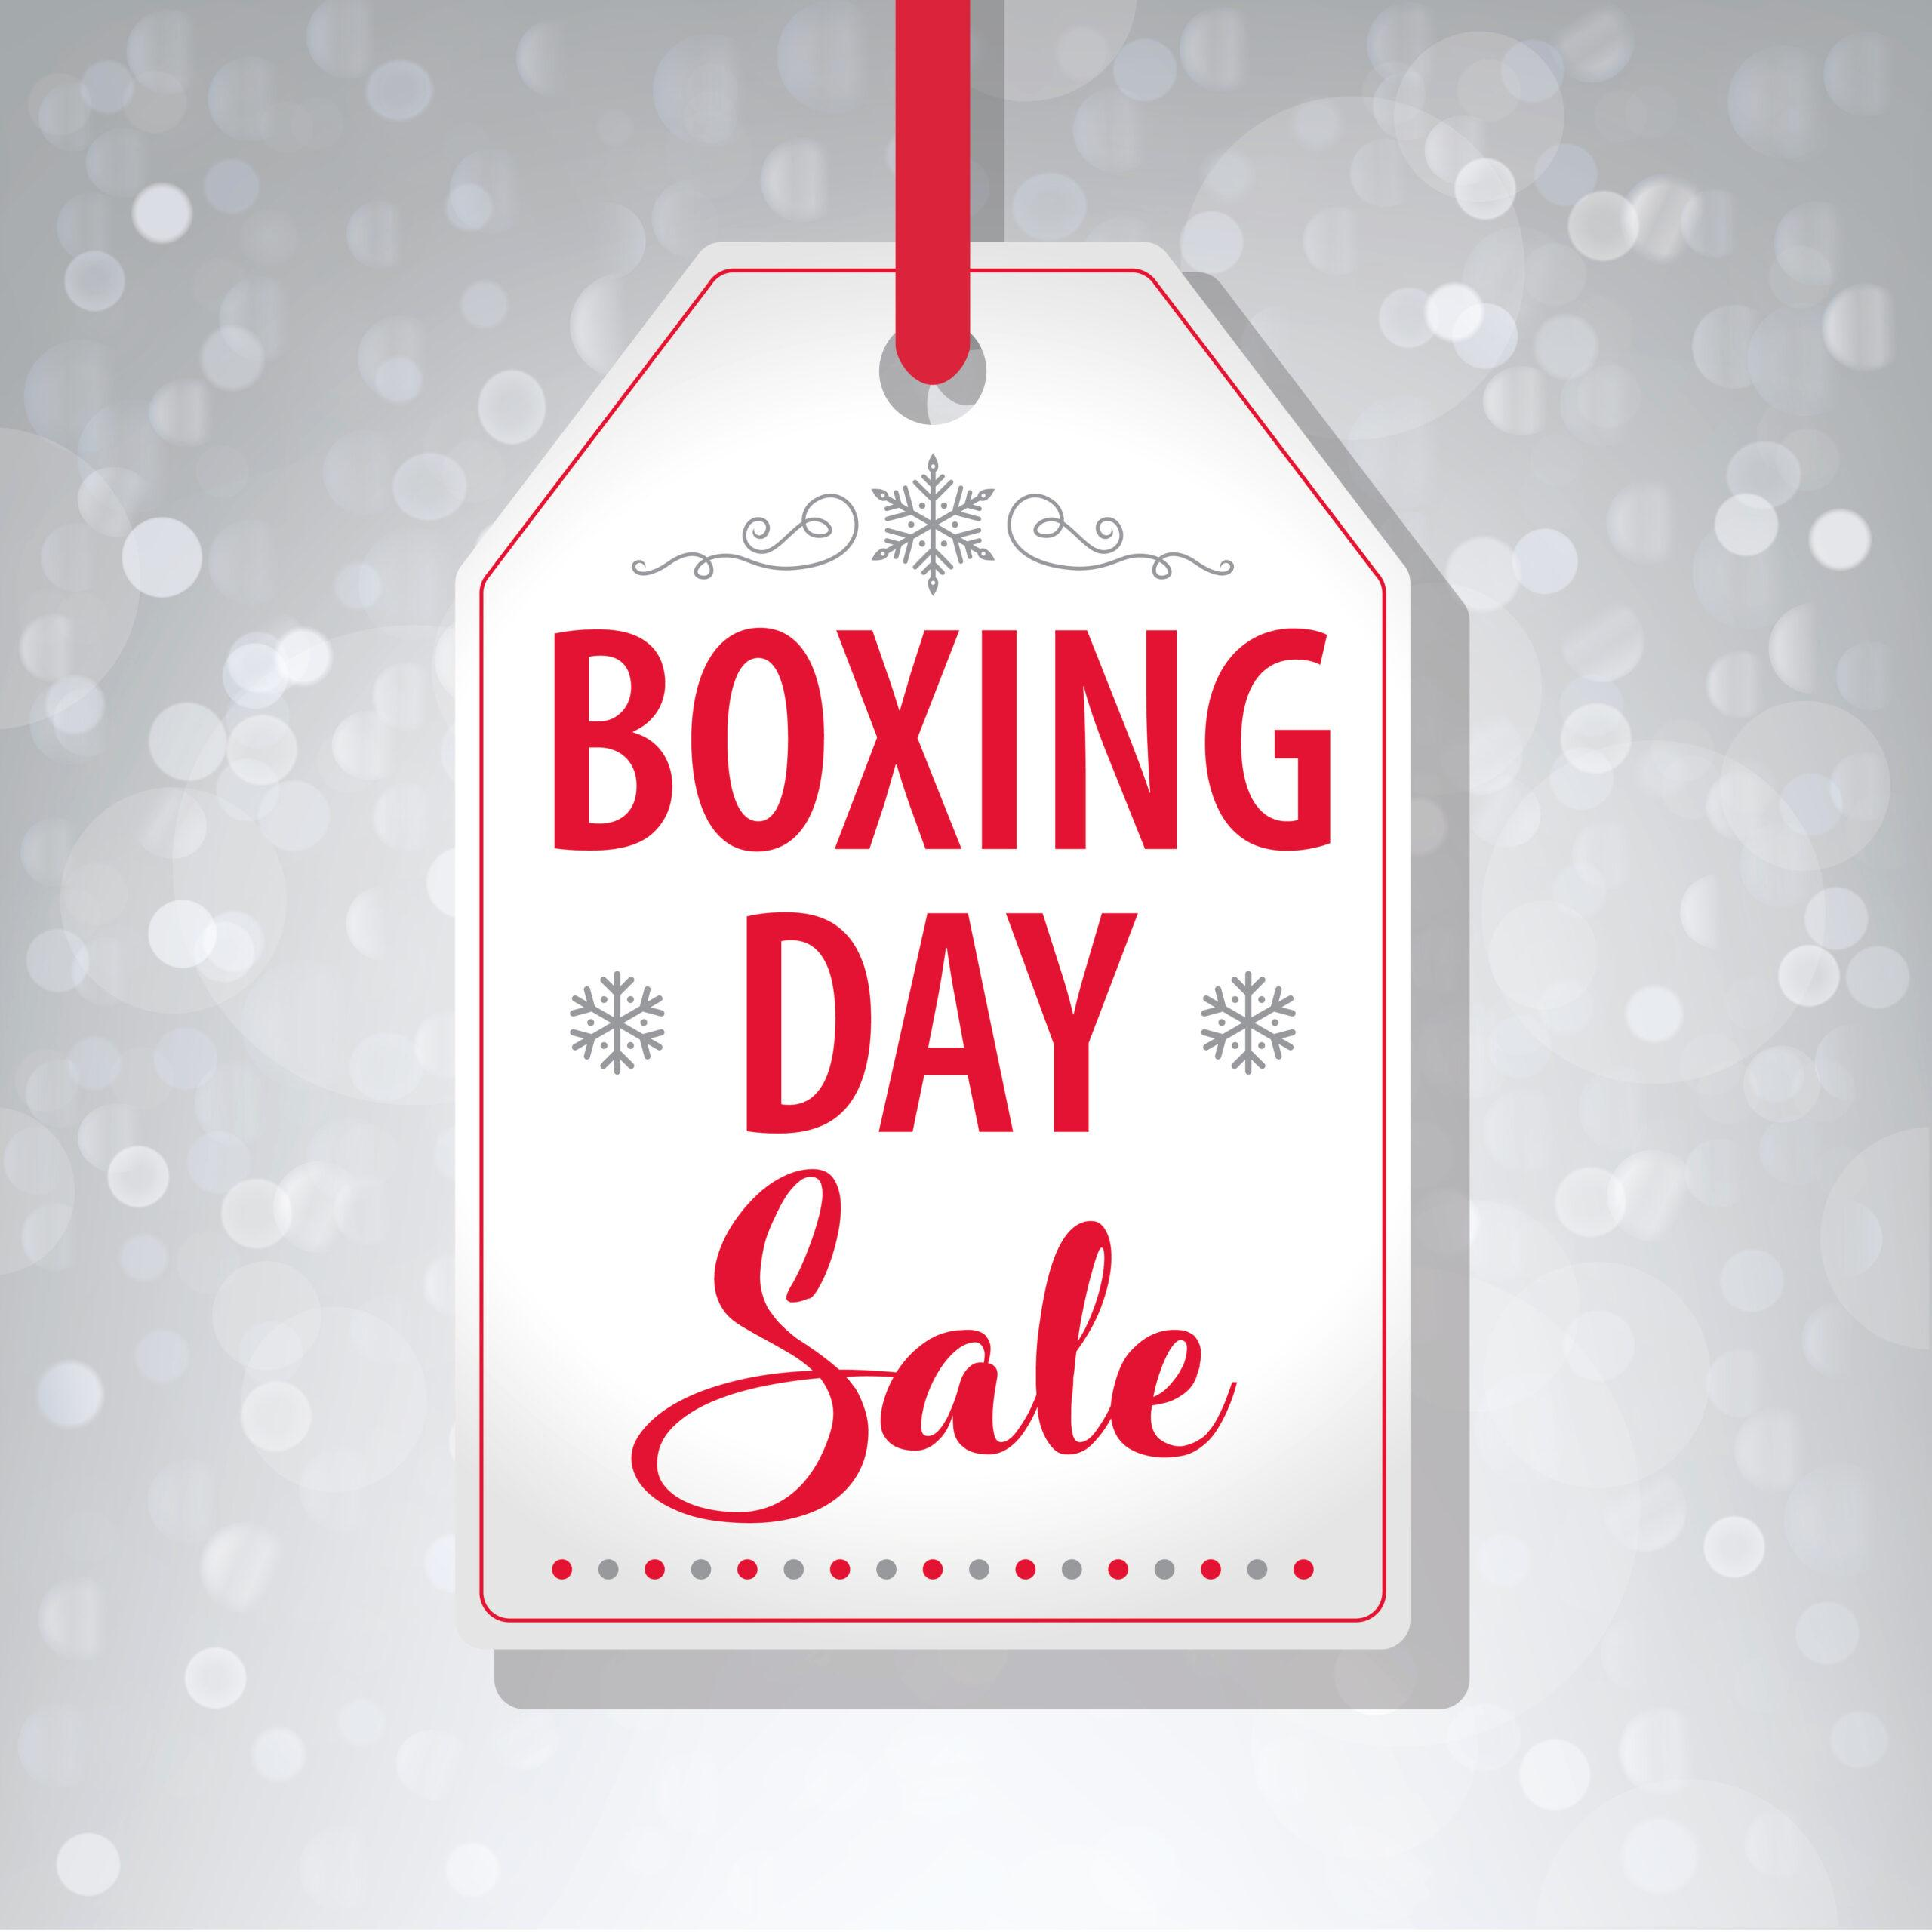 Boxing Day Sales: Prices And Footfall Drops